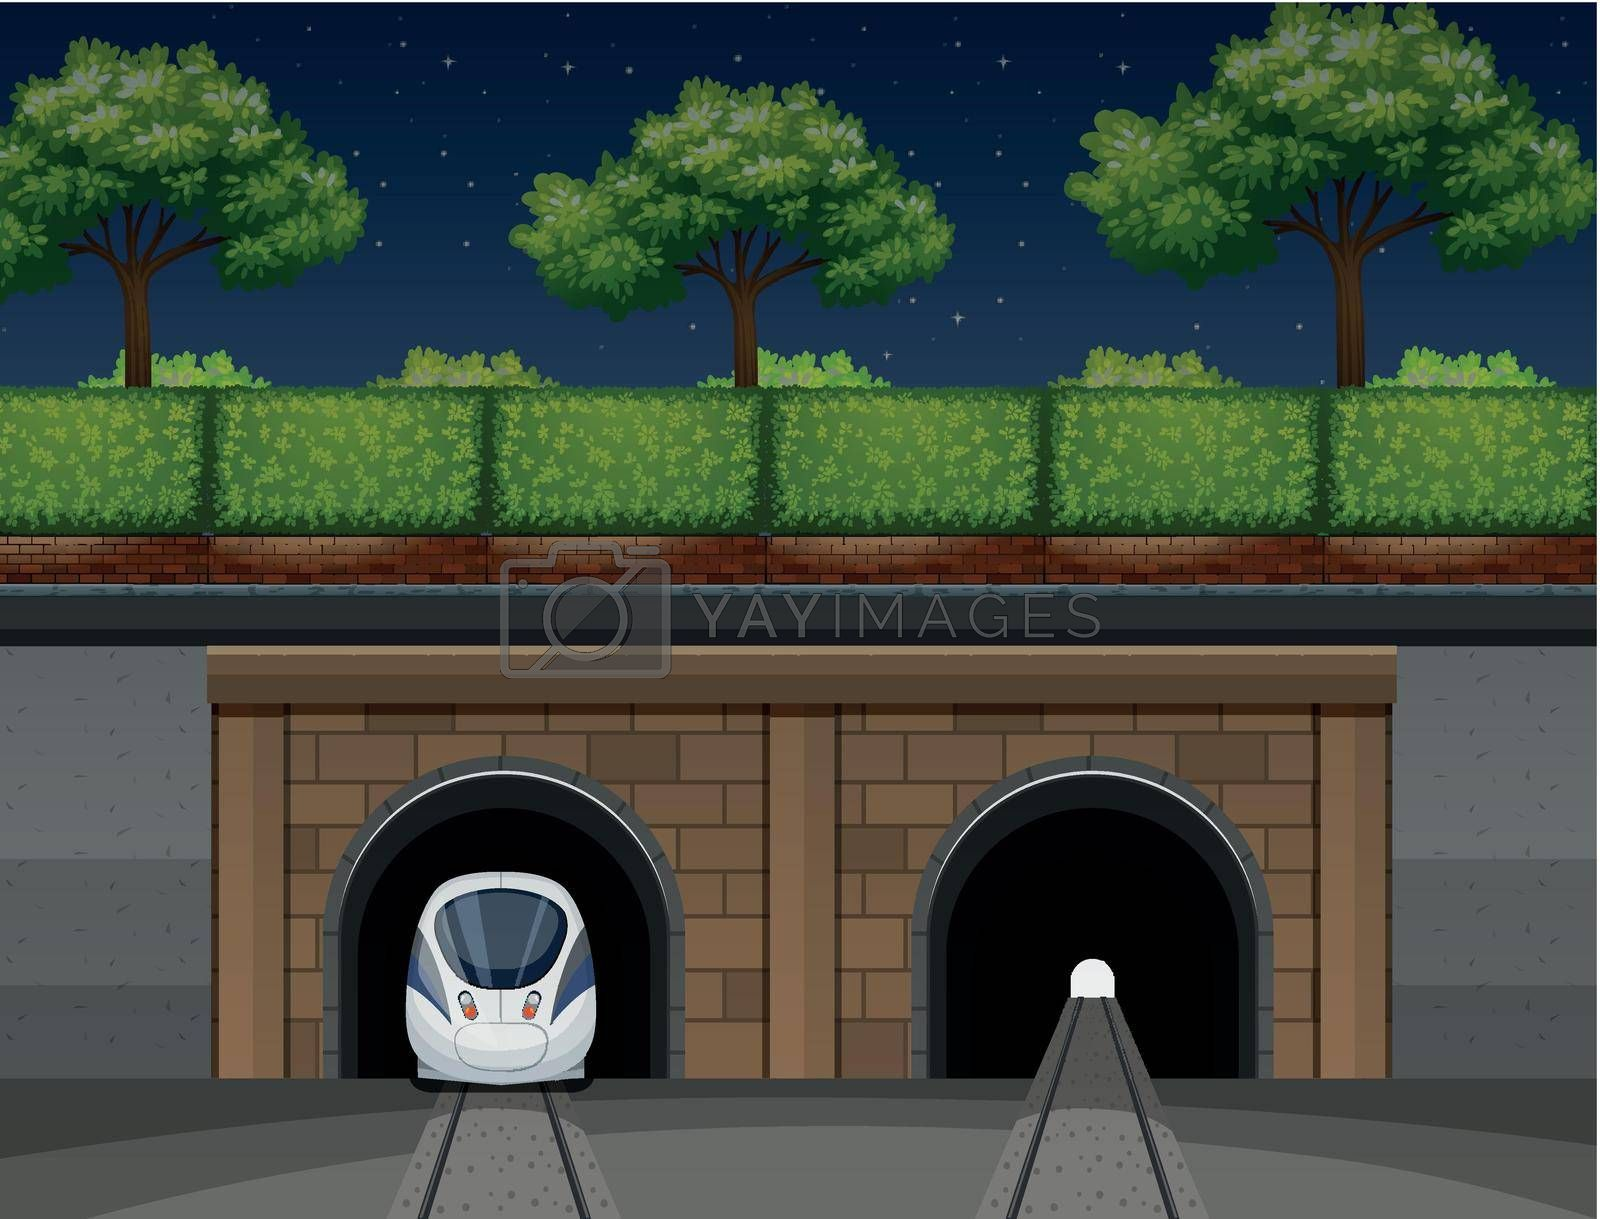 Royalty free image of An underground train transportation by iimages